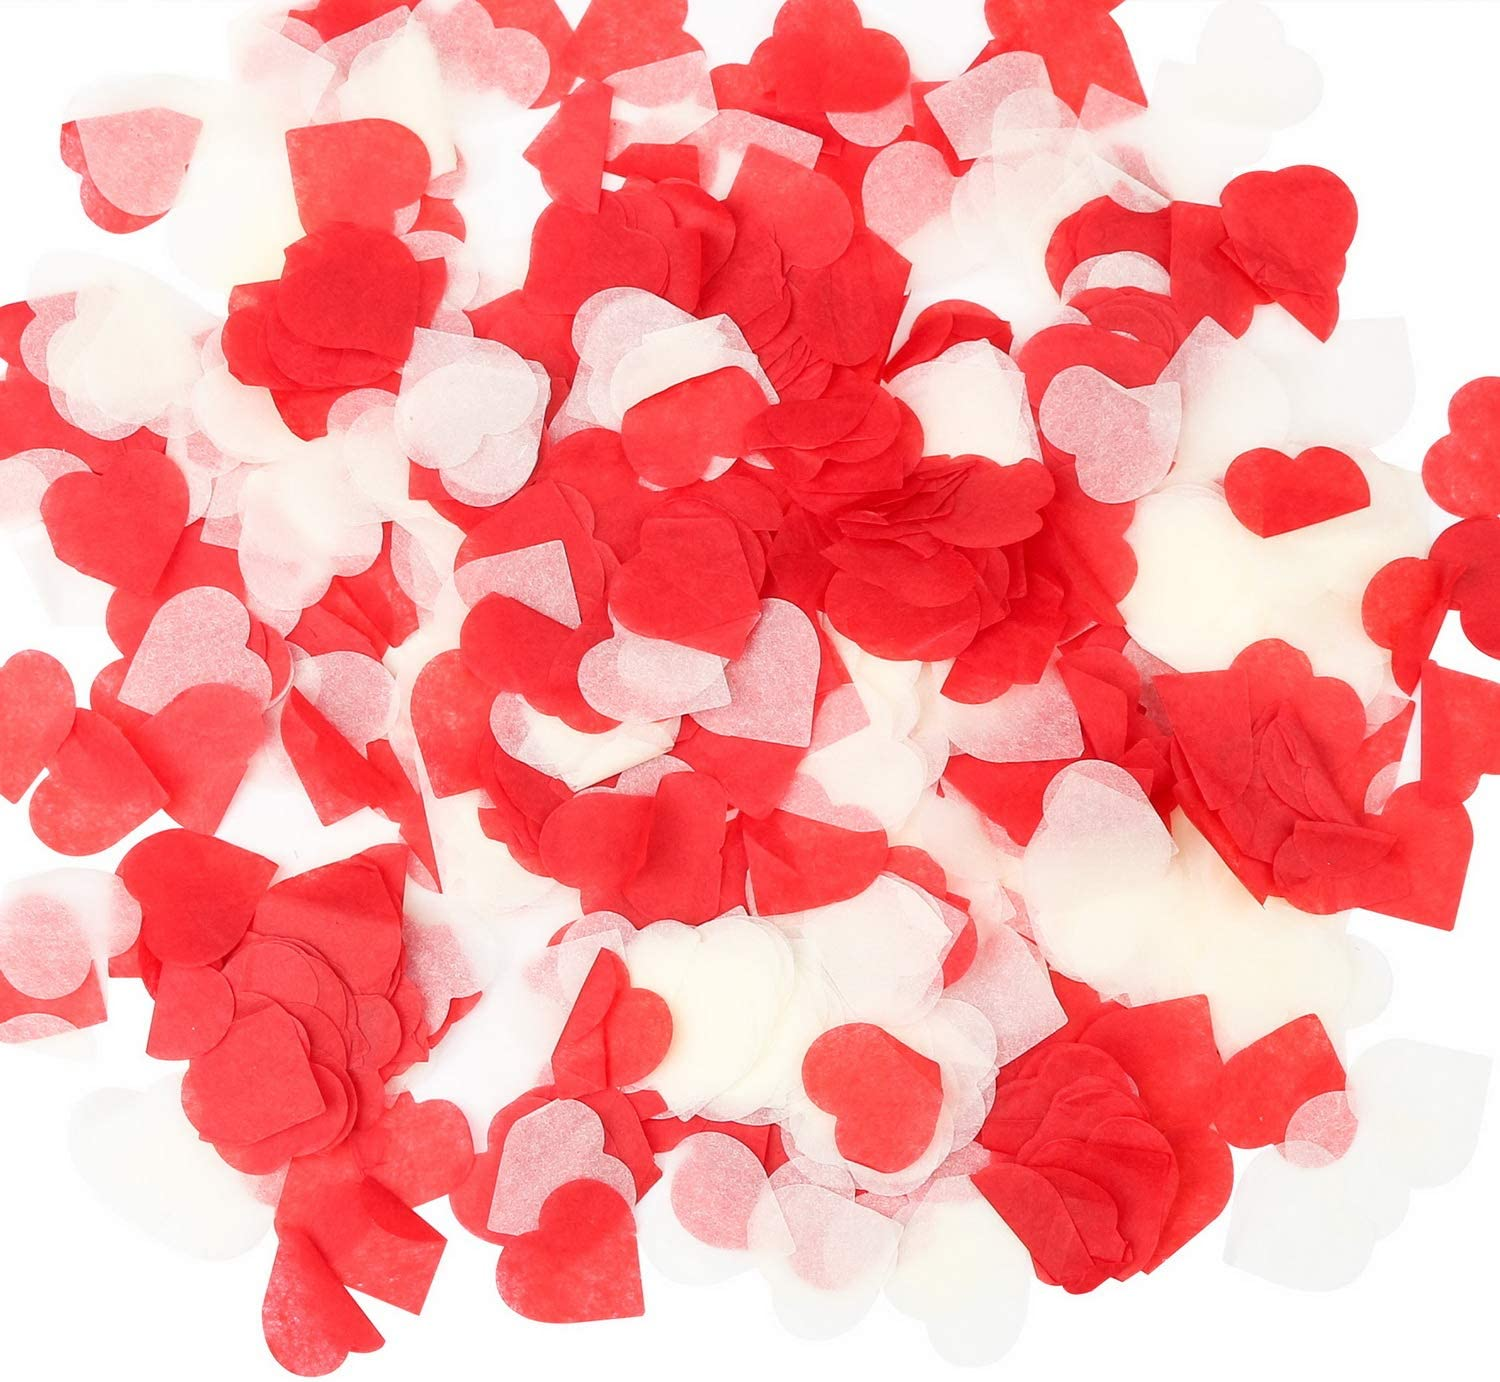 Red and white confetti